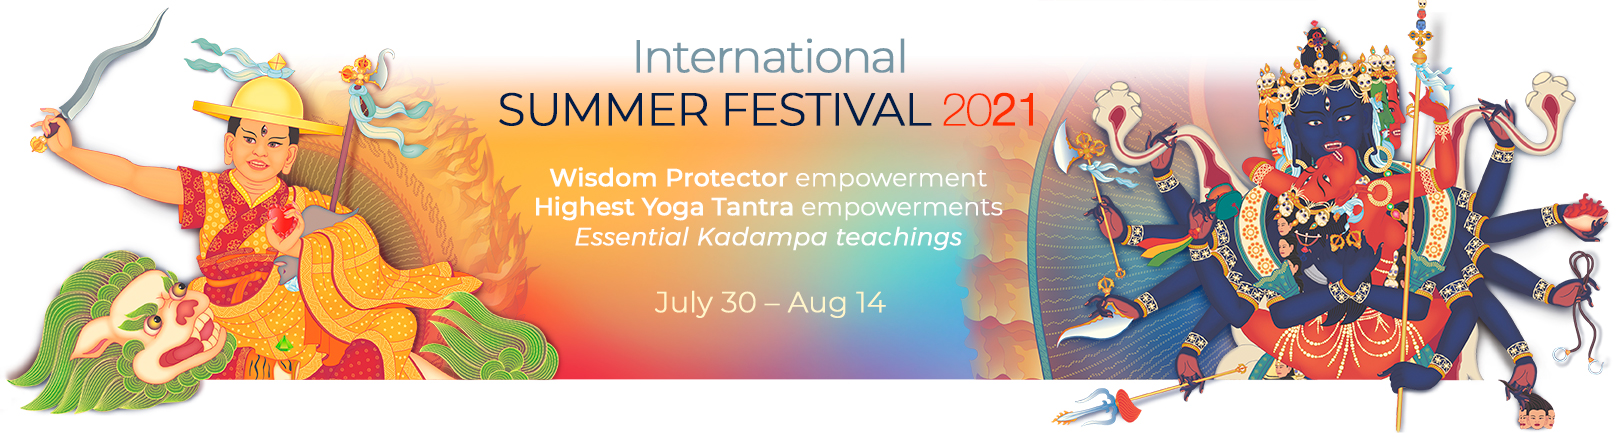 International Summer Festival 2021